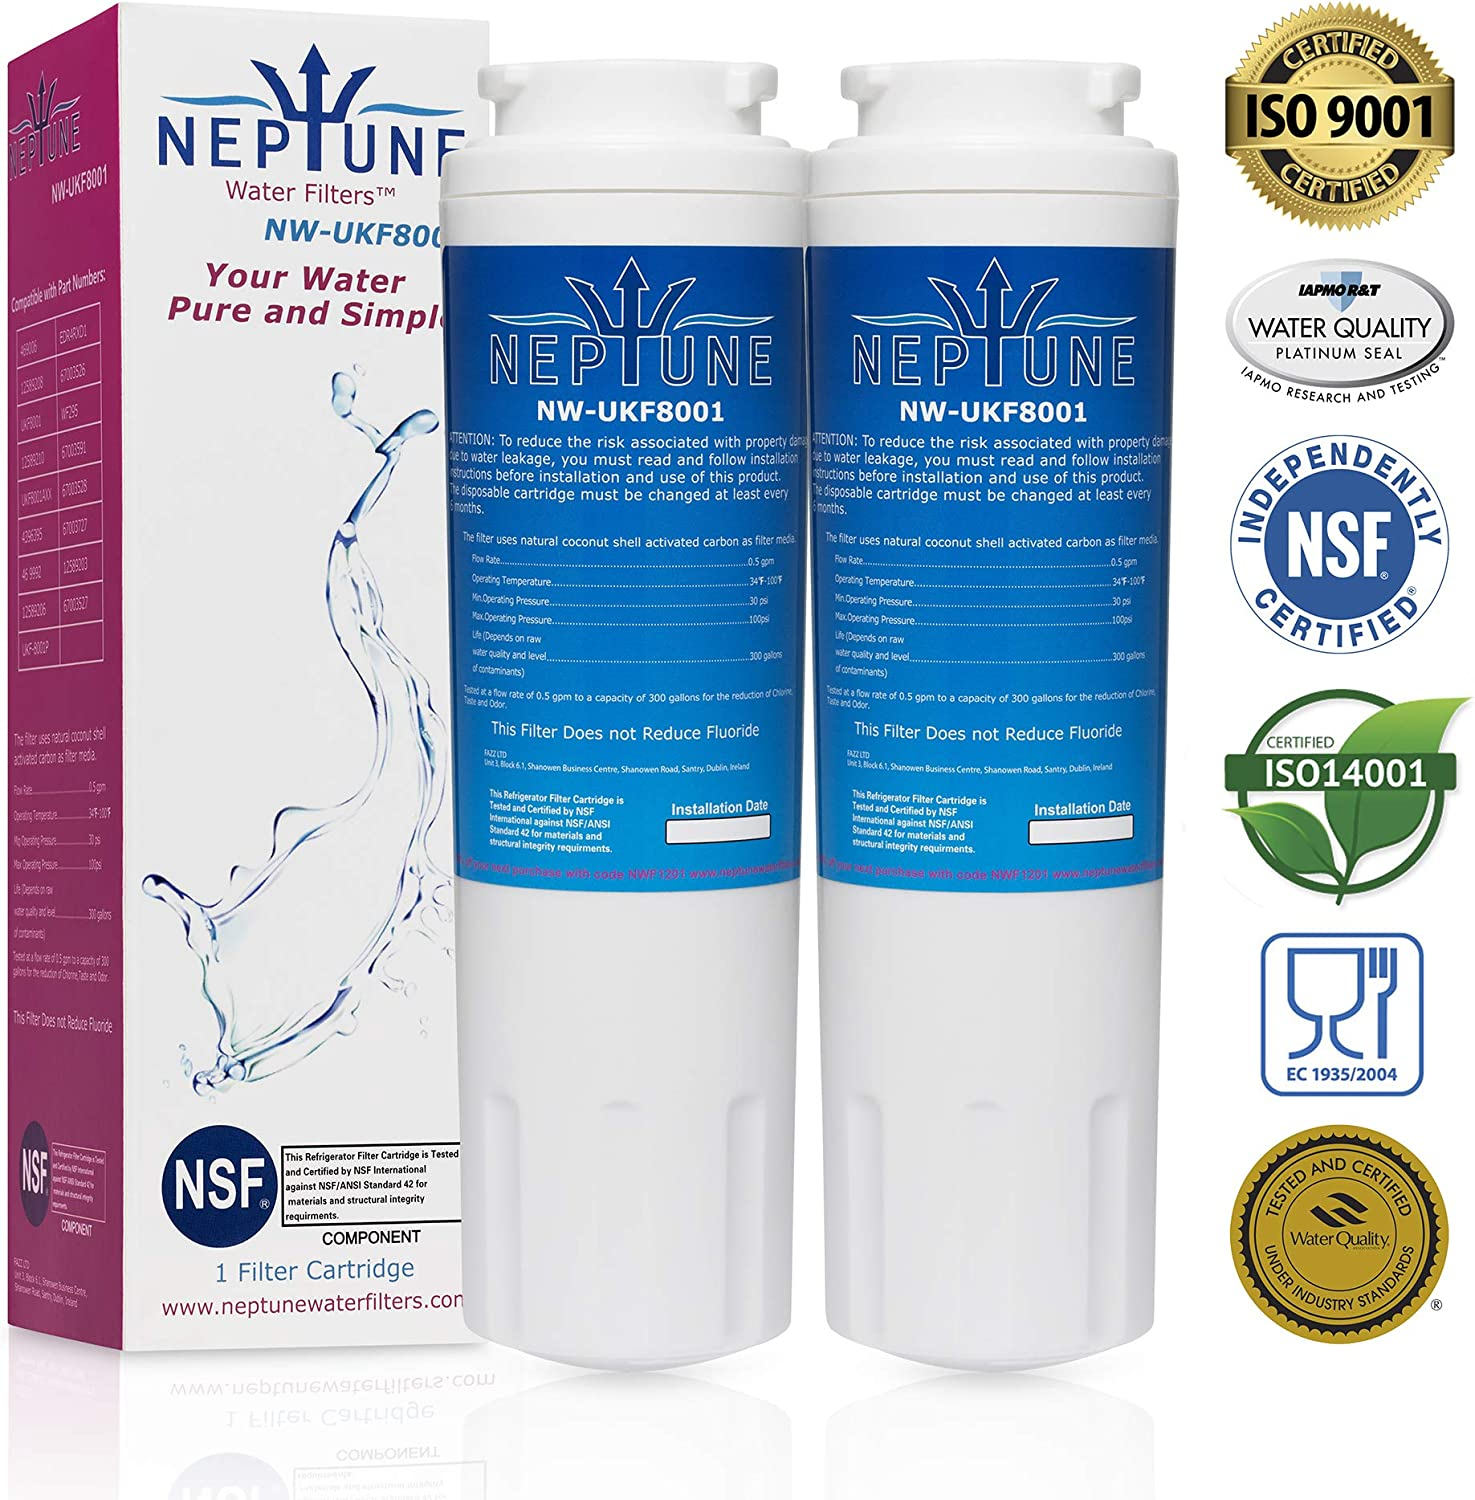 Neptune Water Filters Replacement for Refrigerator Water Filter for Maytag UKF8001, UKF8001AXX, UKF8001P, Whirlpool 4396395, 469006, EDR4RXD1, EveryDrop Filter 4, Puriclean II (2)